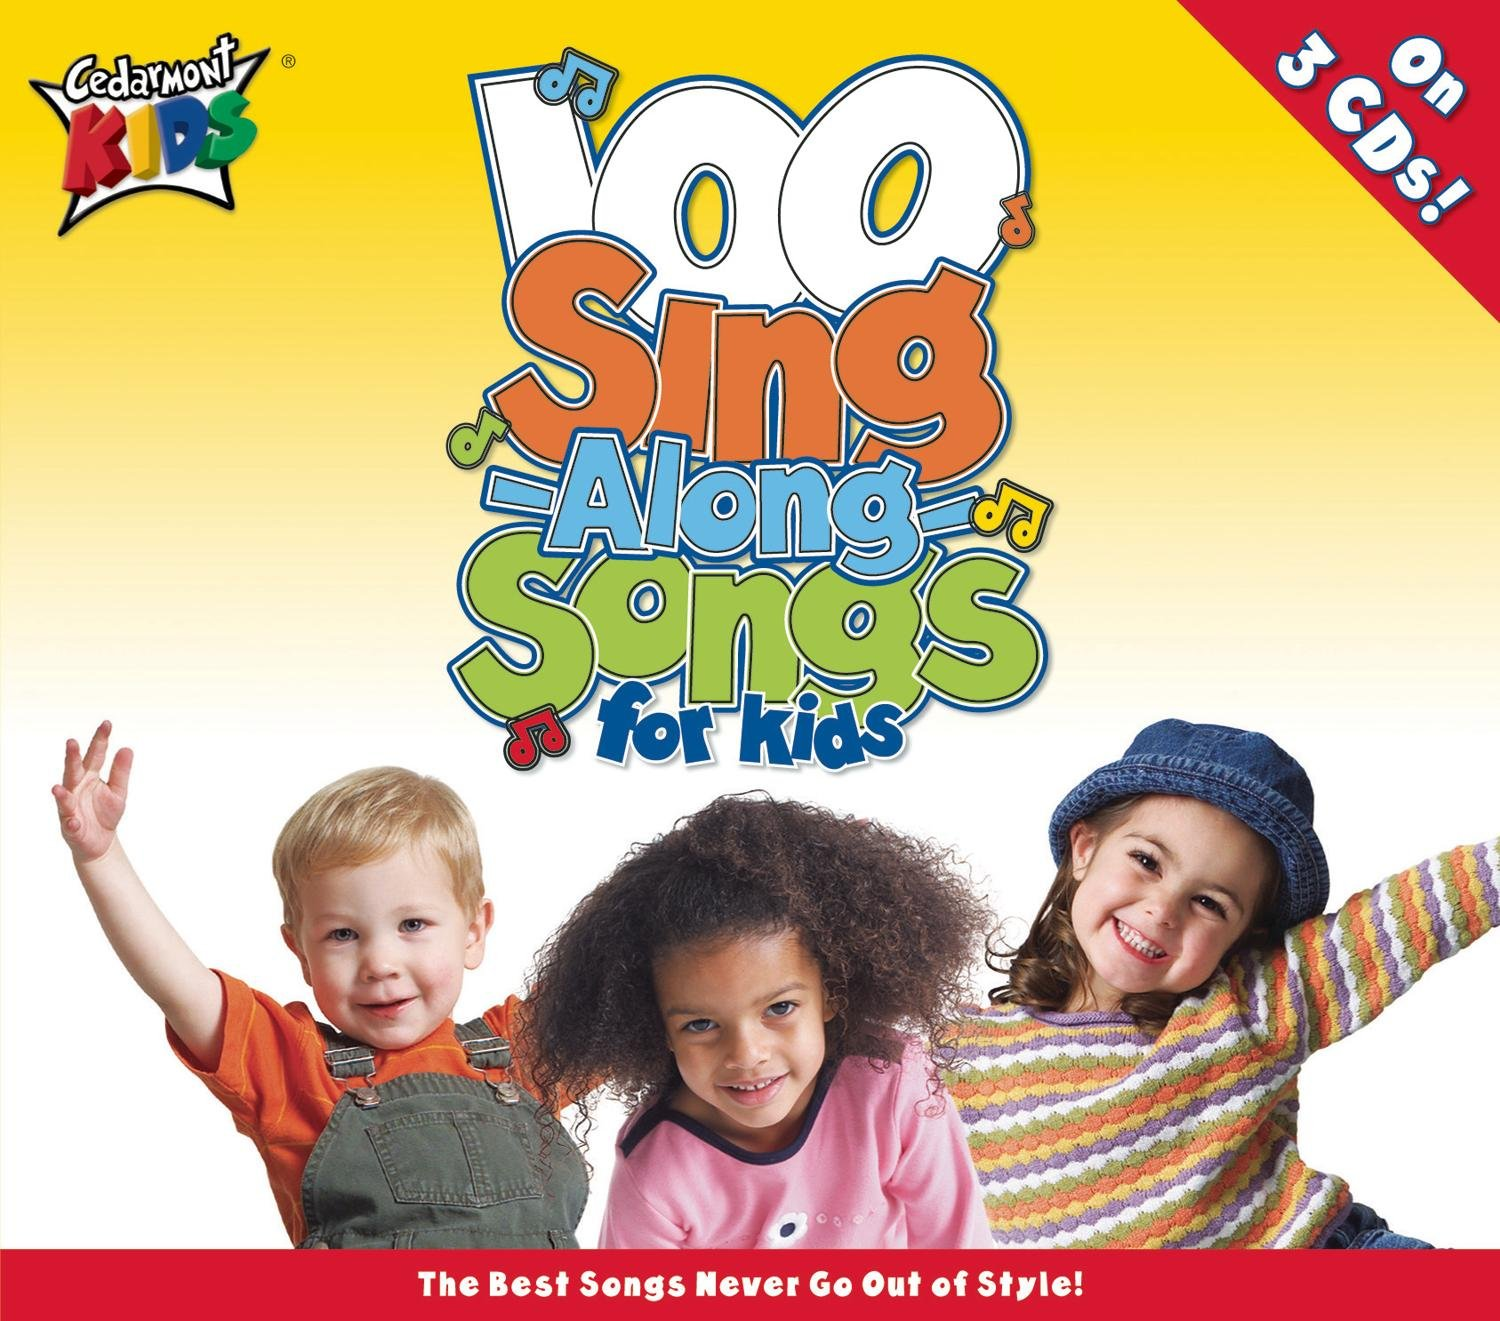 100 Singalong Songs For Kids by Provident Distribution Group (Image #1)